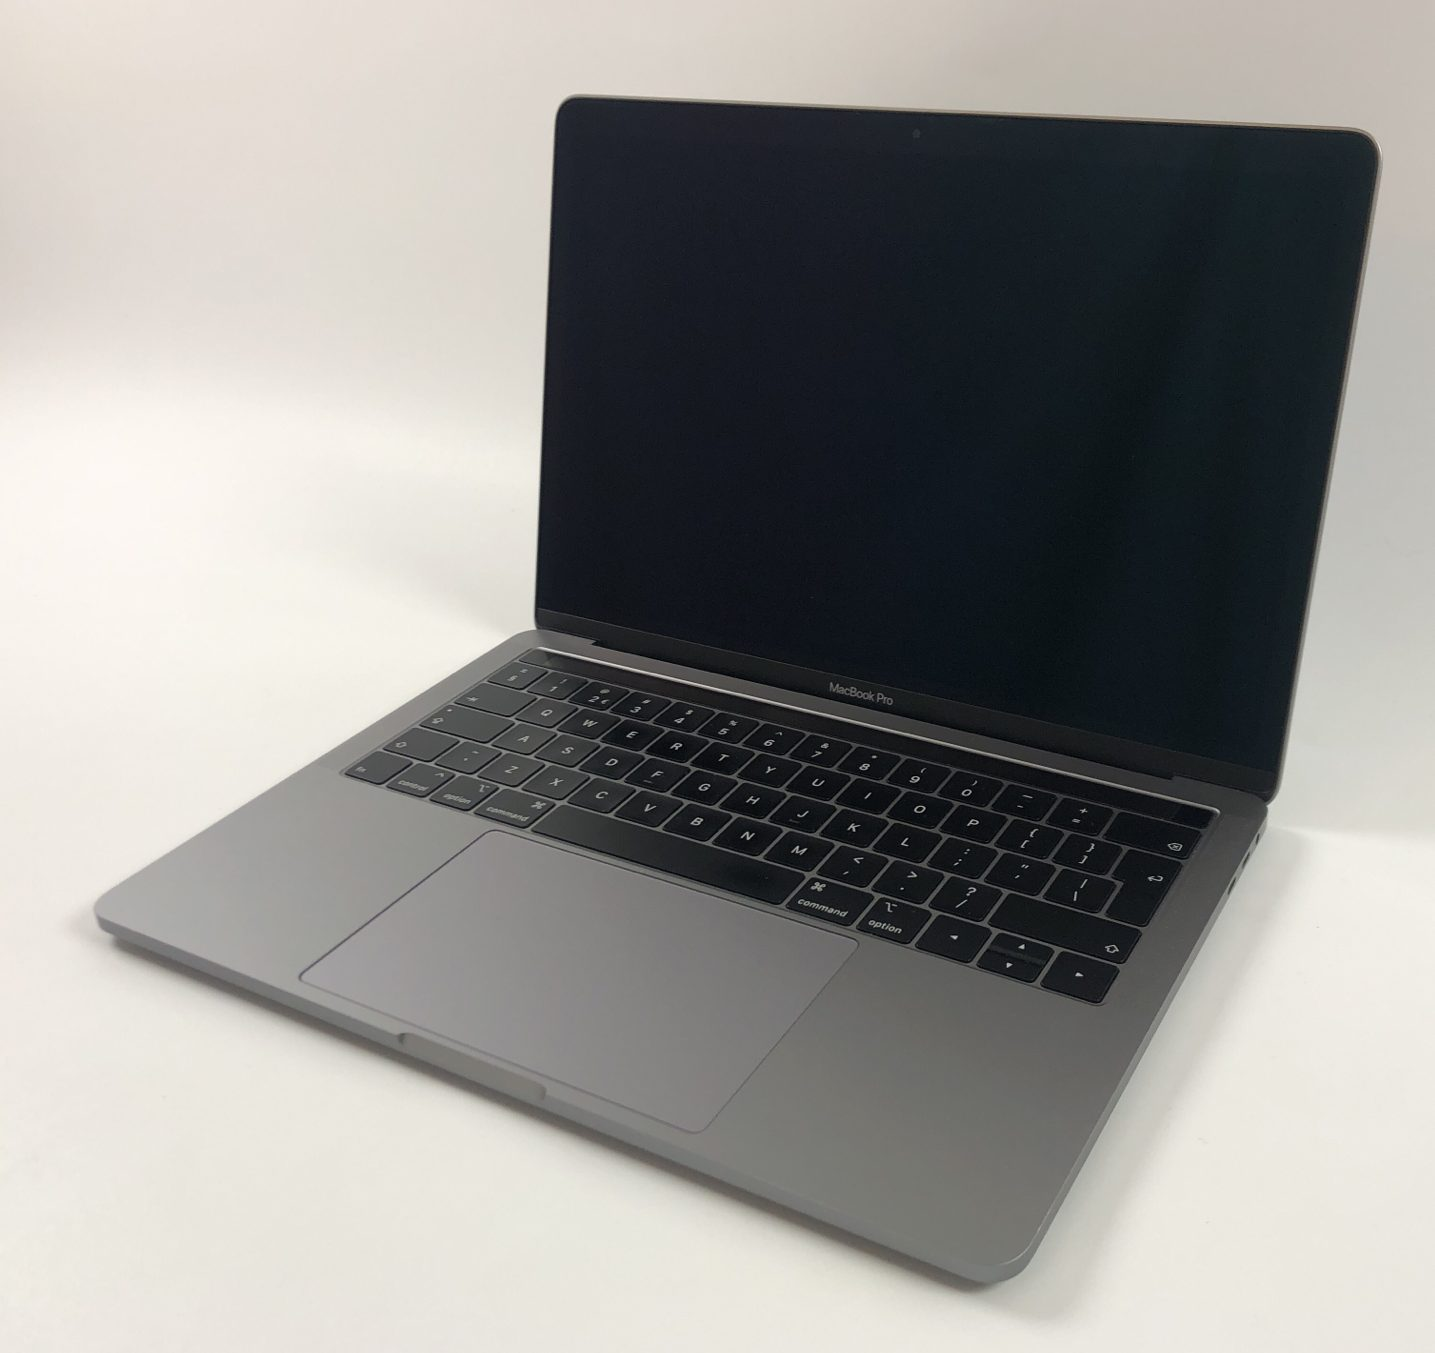 "MacBook Pro 13"" 4TBT Mid 2018 (Intel Quad-Core i5 2.3 GHz 8 GB RAM 256 GB SSD), Space Gray, Intel Quad-Core i5 2.3 GHz, 8 GB RAM, 256 GB SSD, Afbeelding 1"